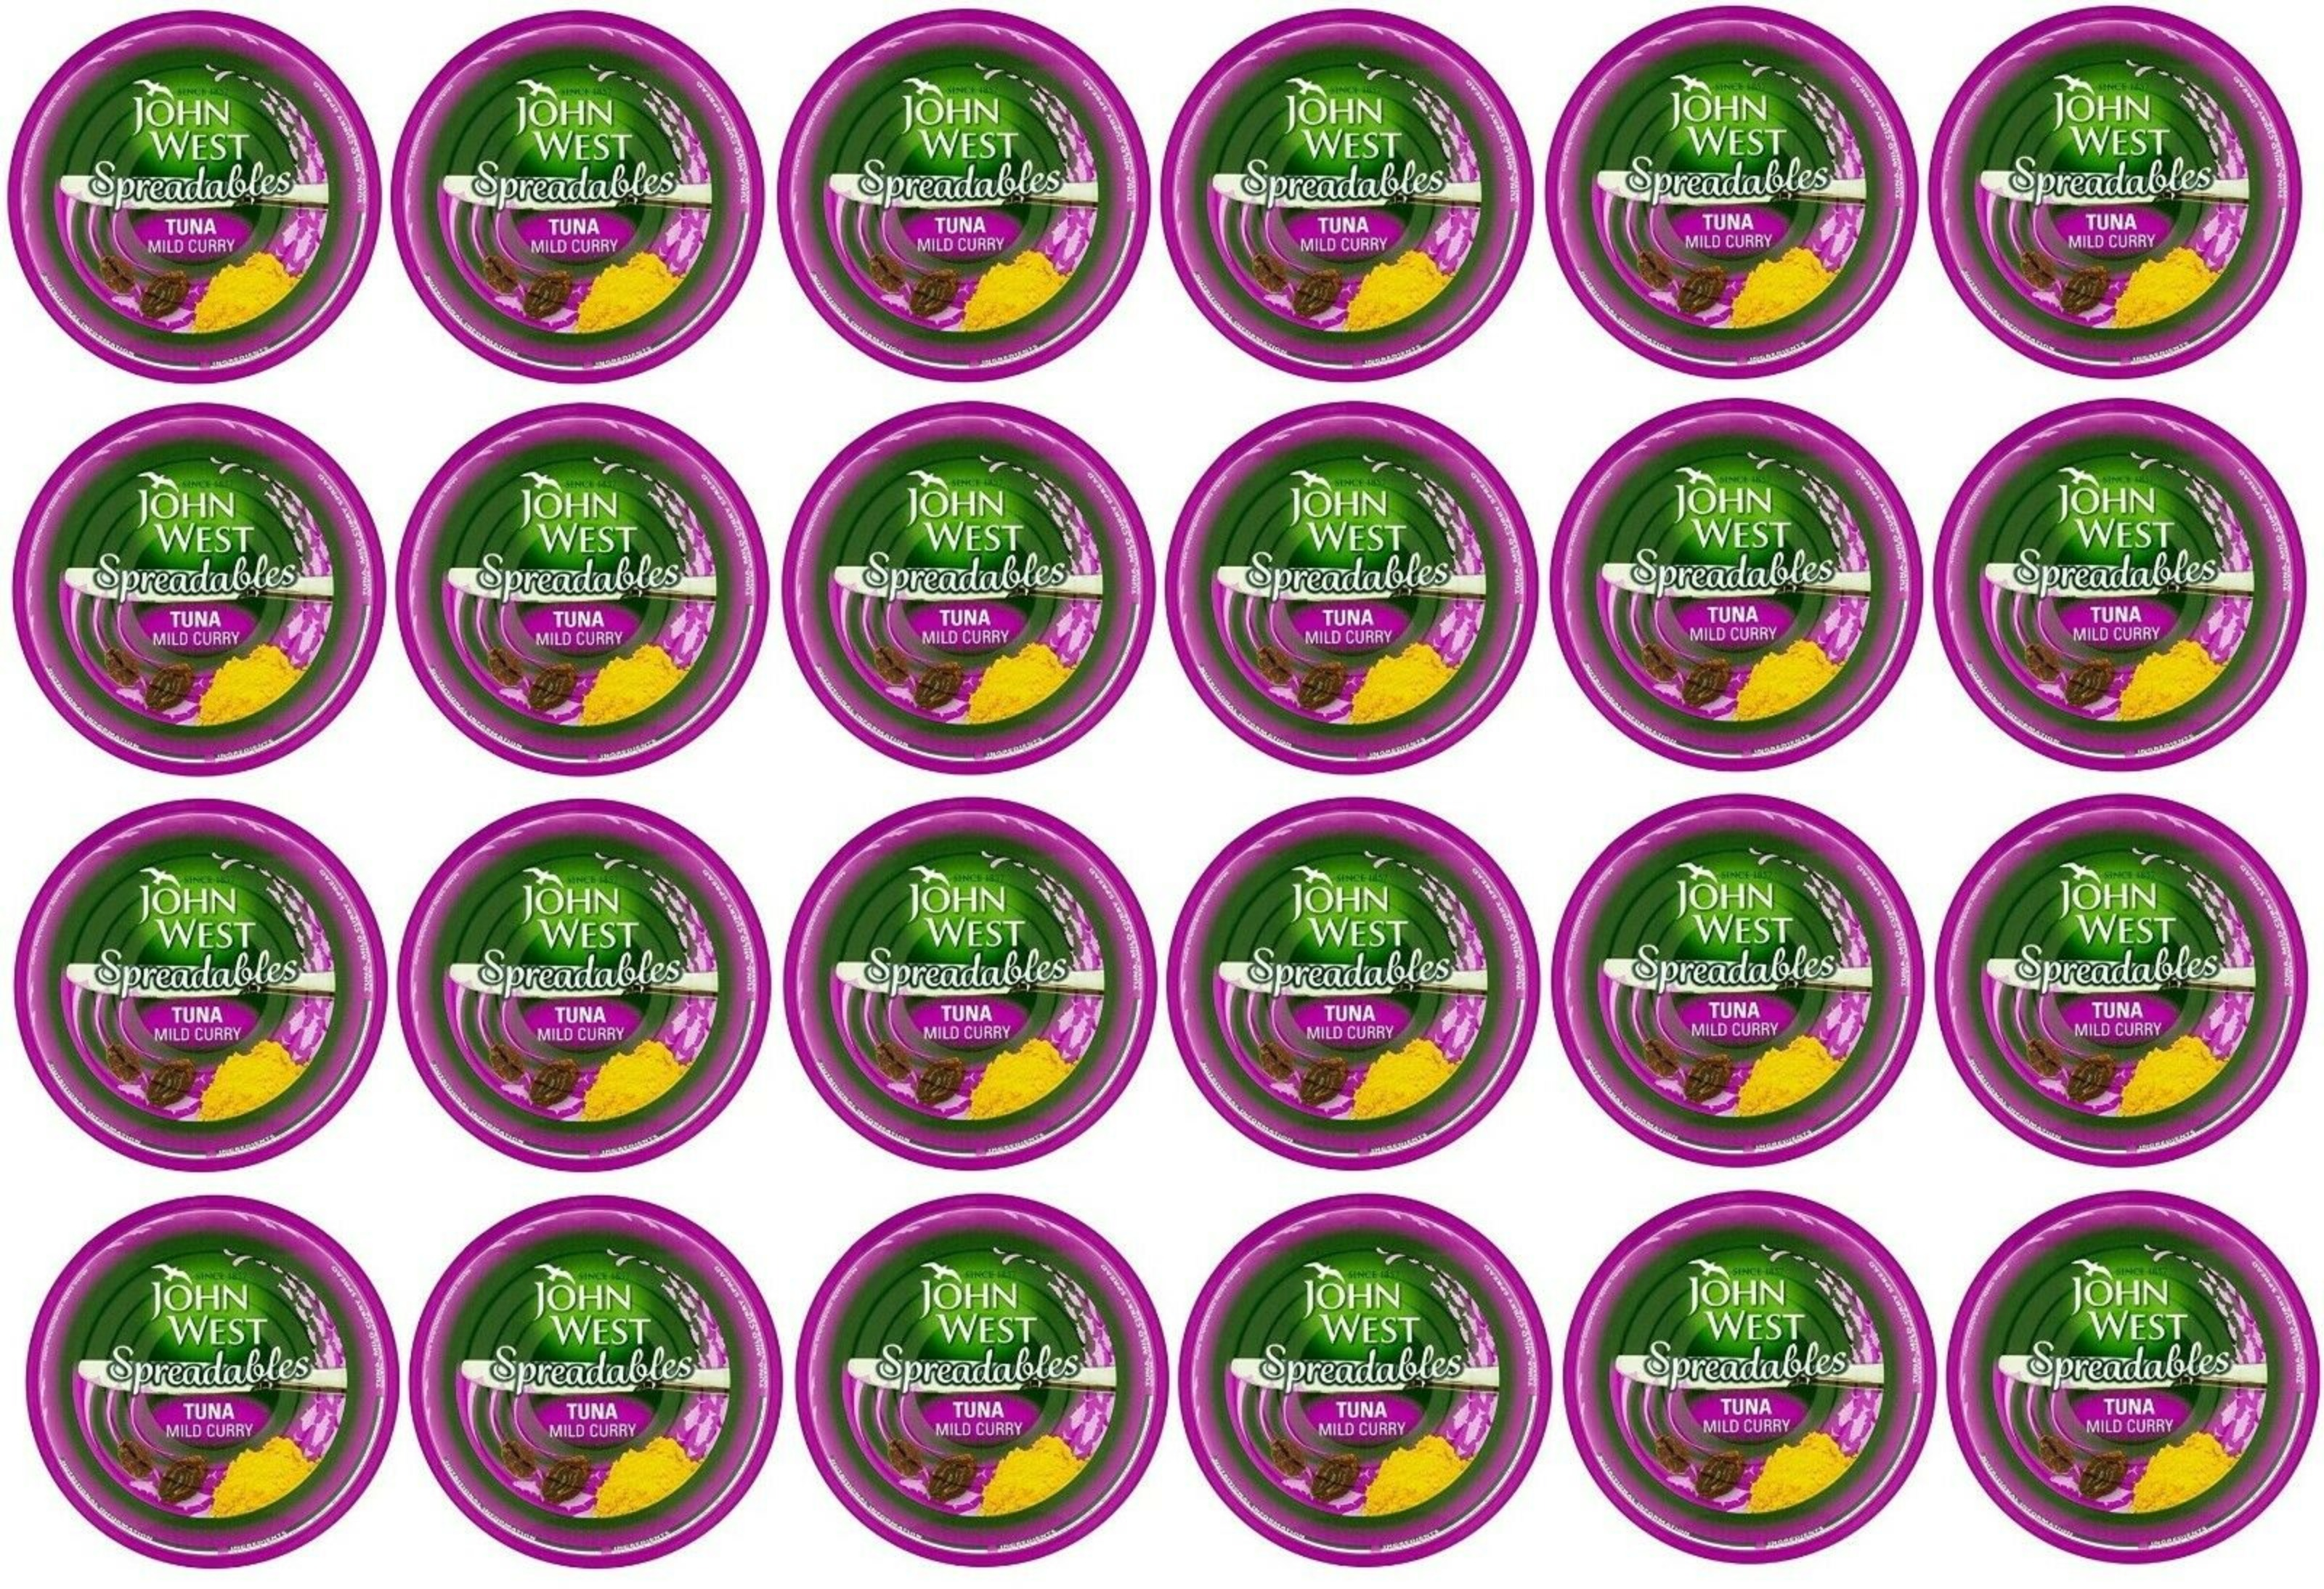 John West Spreadables Tuna - Mild Curry 3x80g